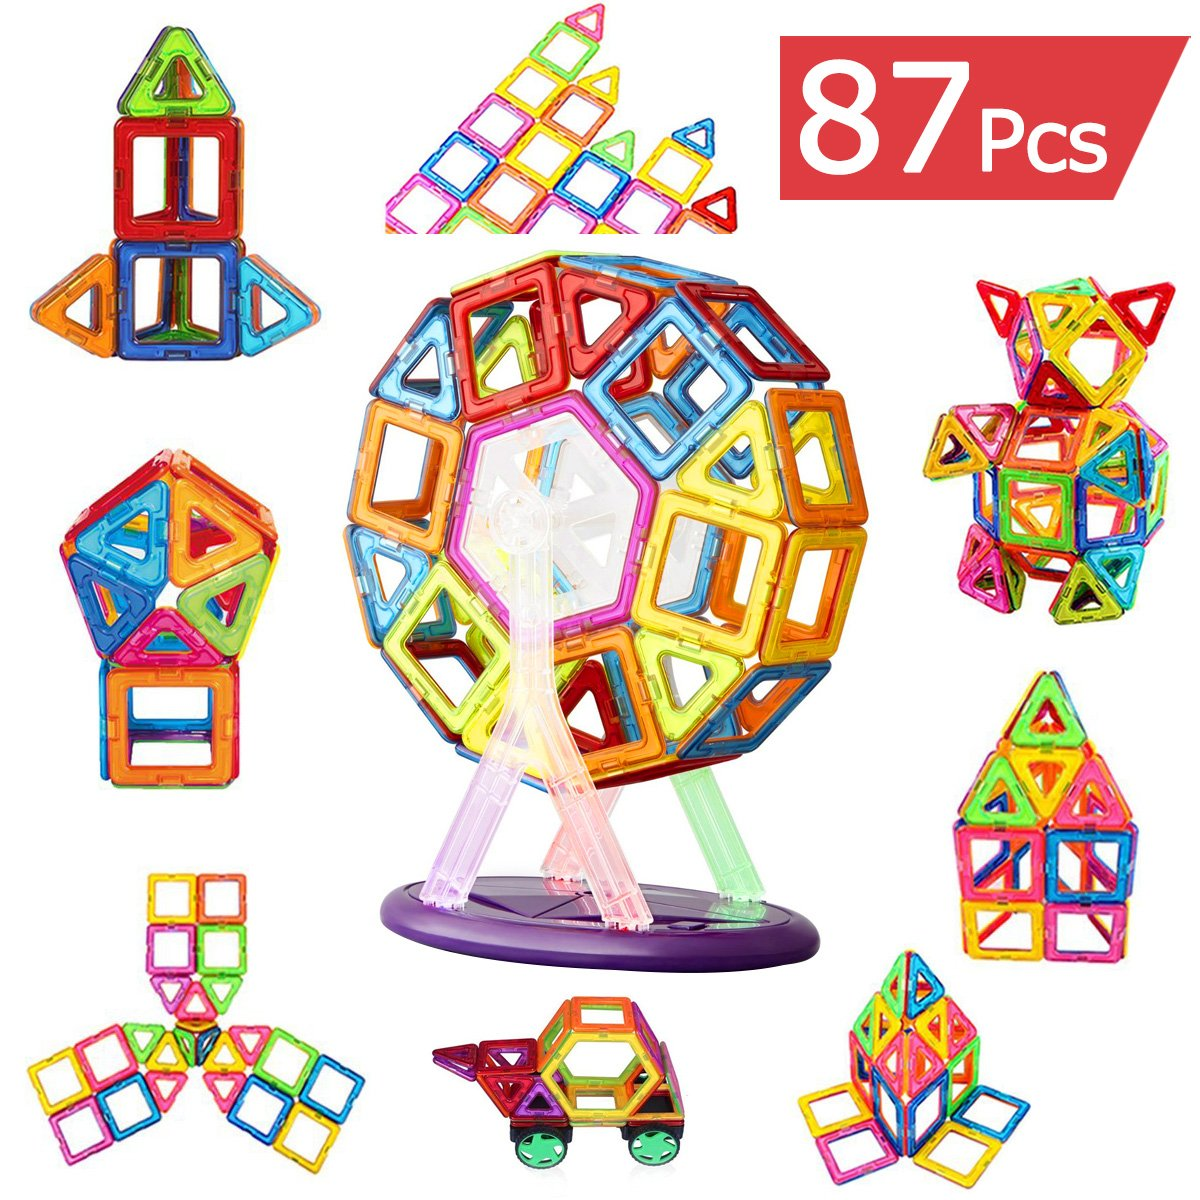 Augymer Magnetic Building Blocks Set, 87 Pcs Magnetic Construction Stacking Toys for Children Kids with Carry Box Letters and Numbers Toys Review